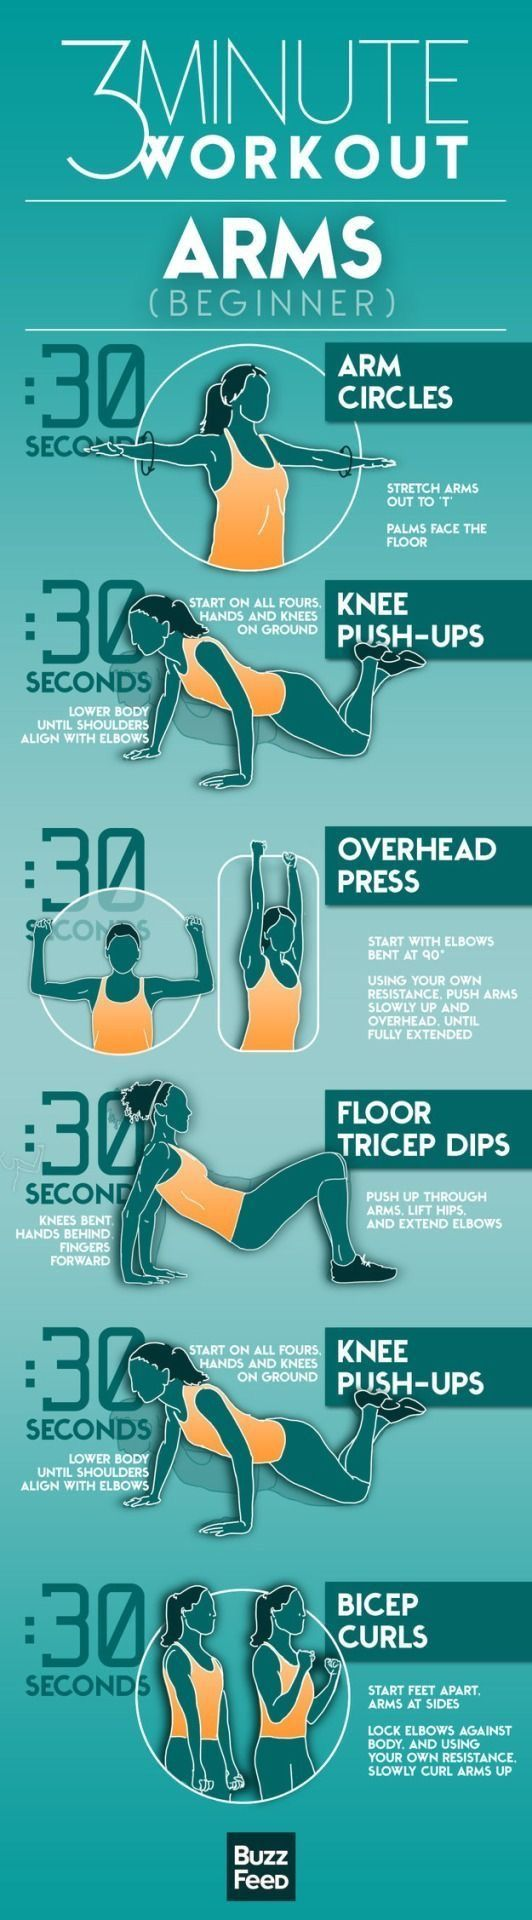 3 minute beginner arm workout